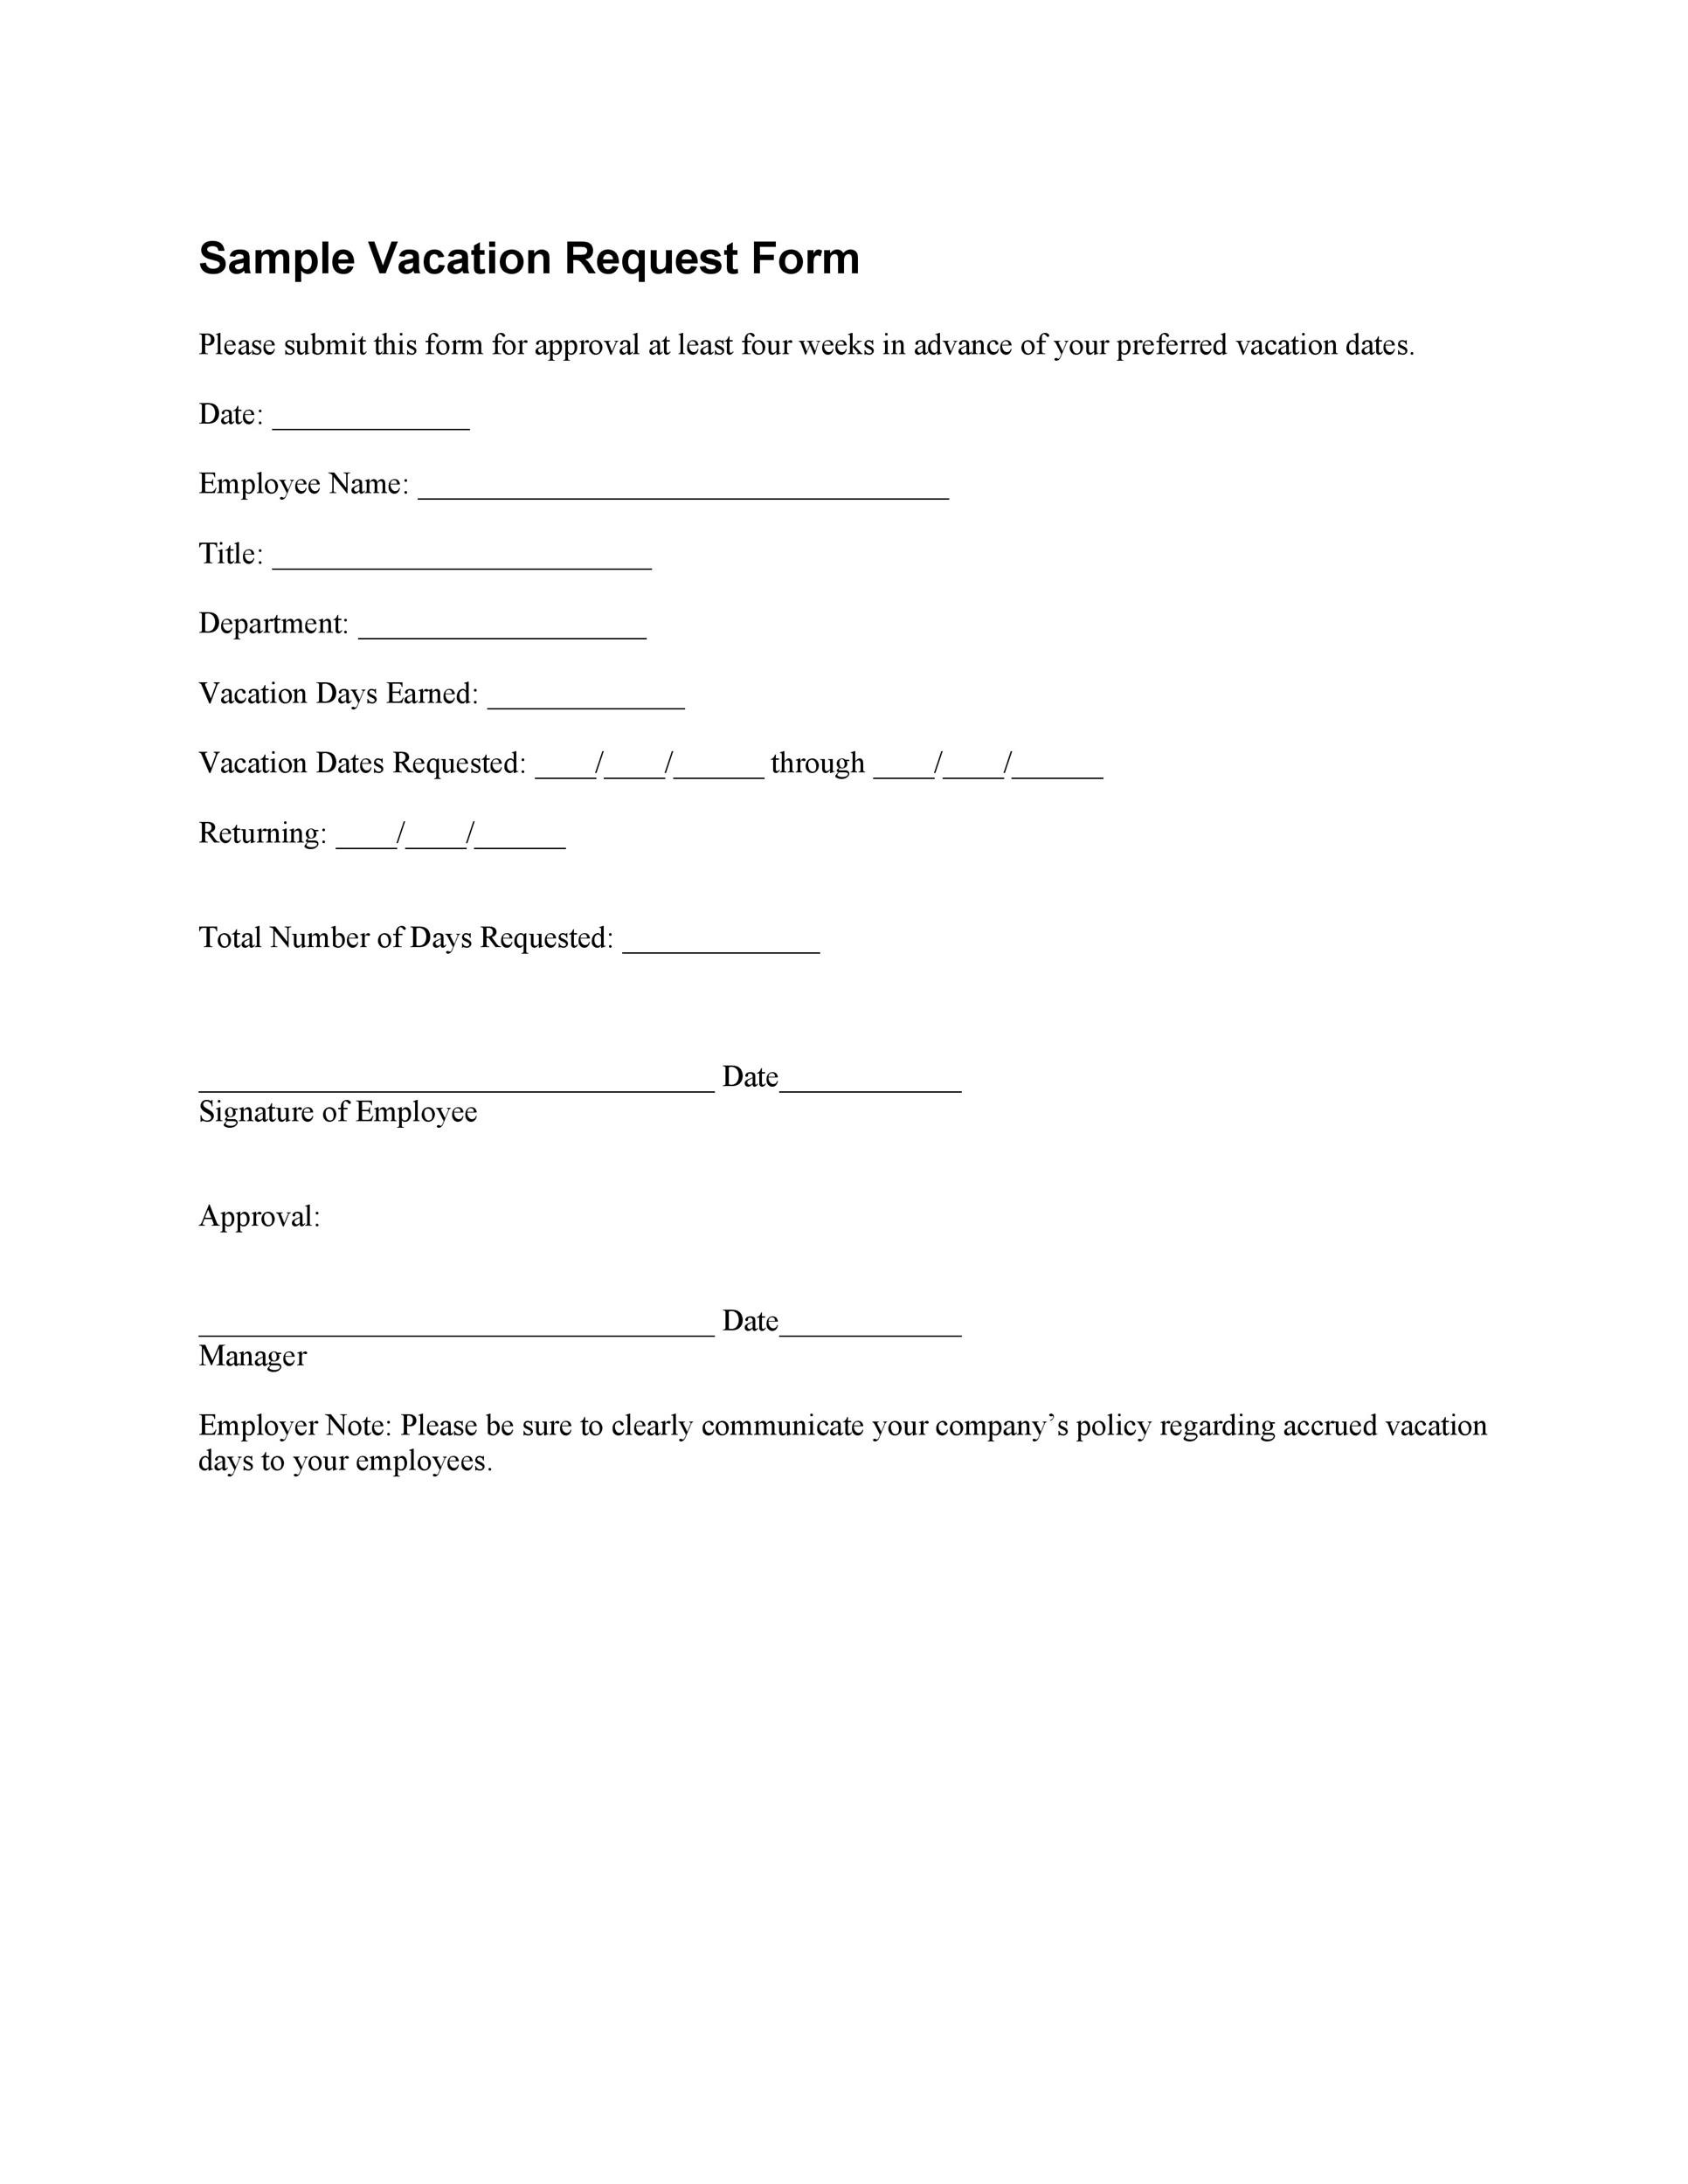 free vacation request form  8 Professional Employee Vacation Request Forms [Word] ᐅ ...